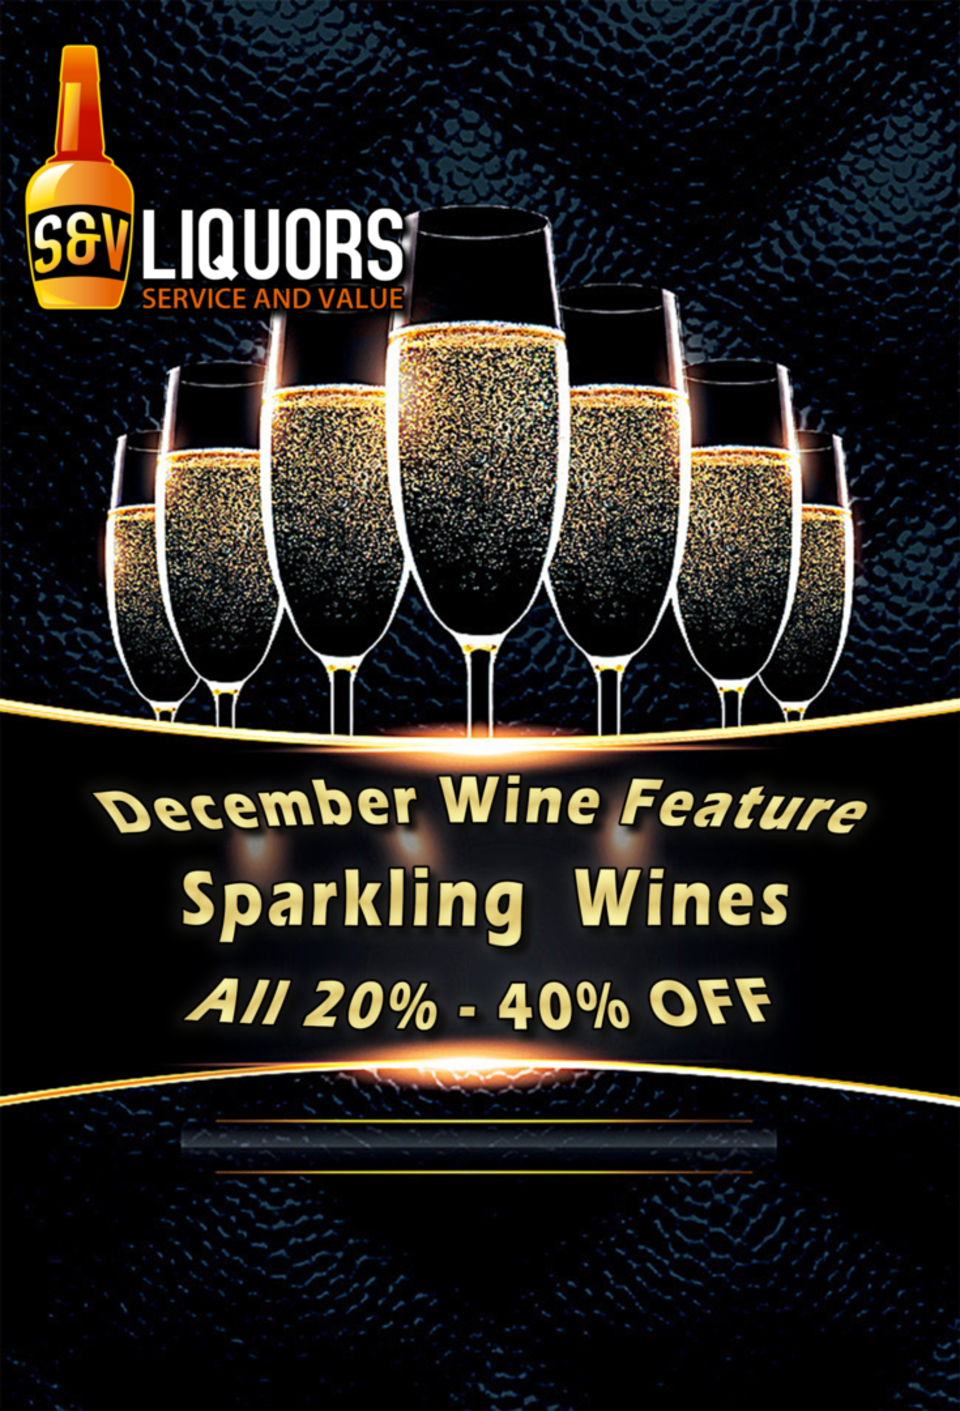 S&V Liquors' December Featured Wines - Over two dozen sparkling wines on sale in Fort Wayne between 20% and 40% Off!